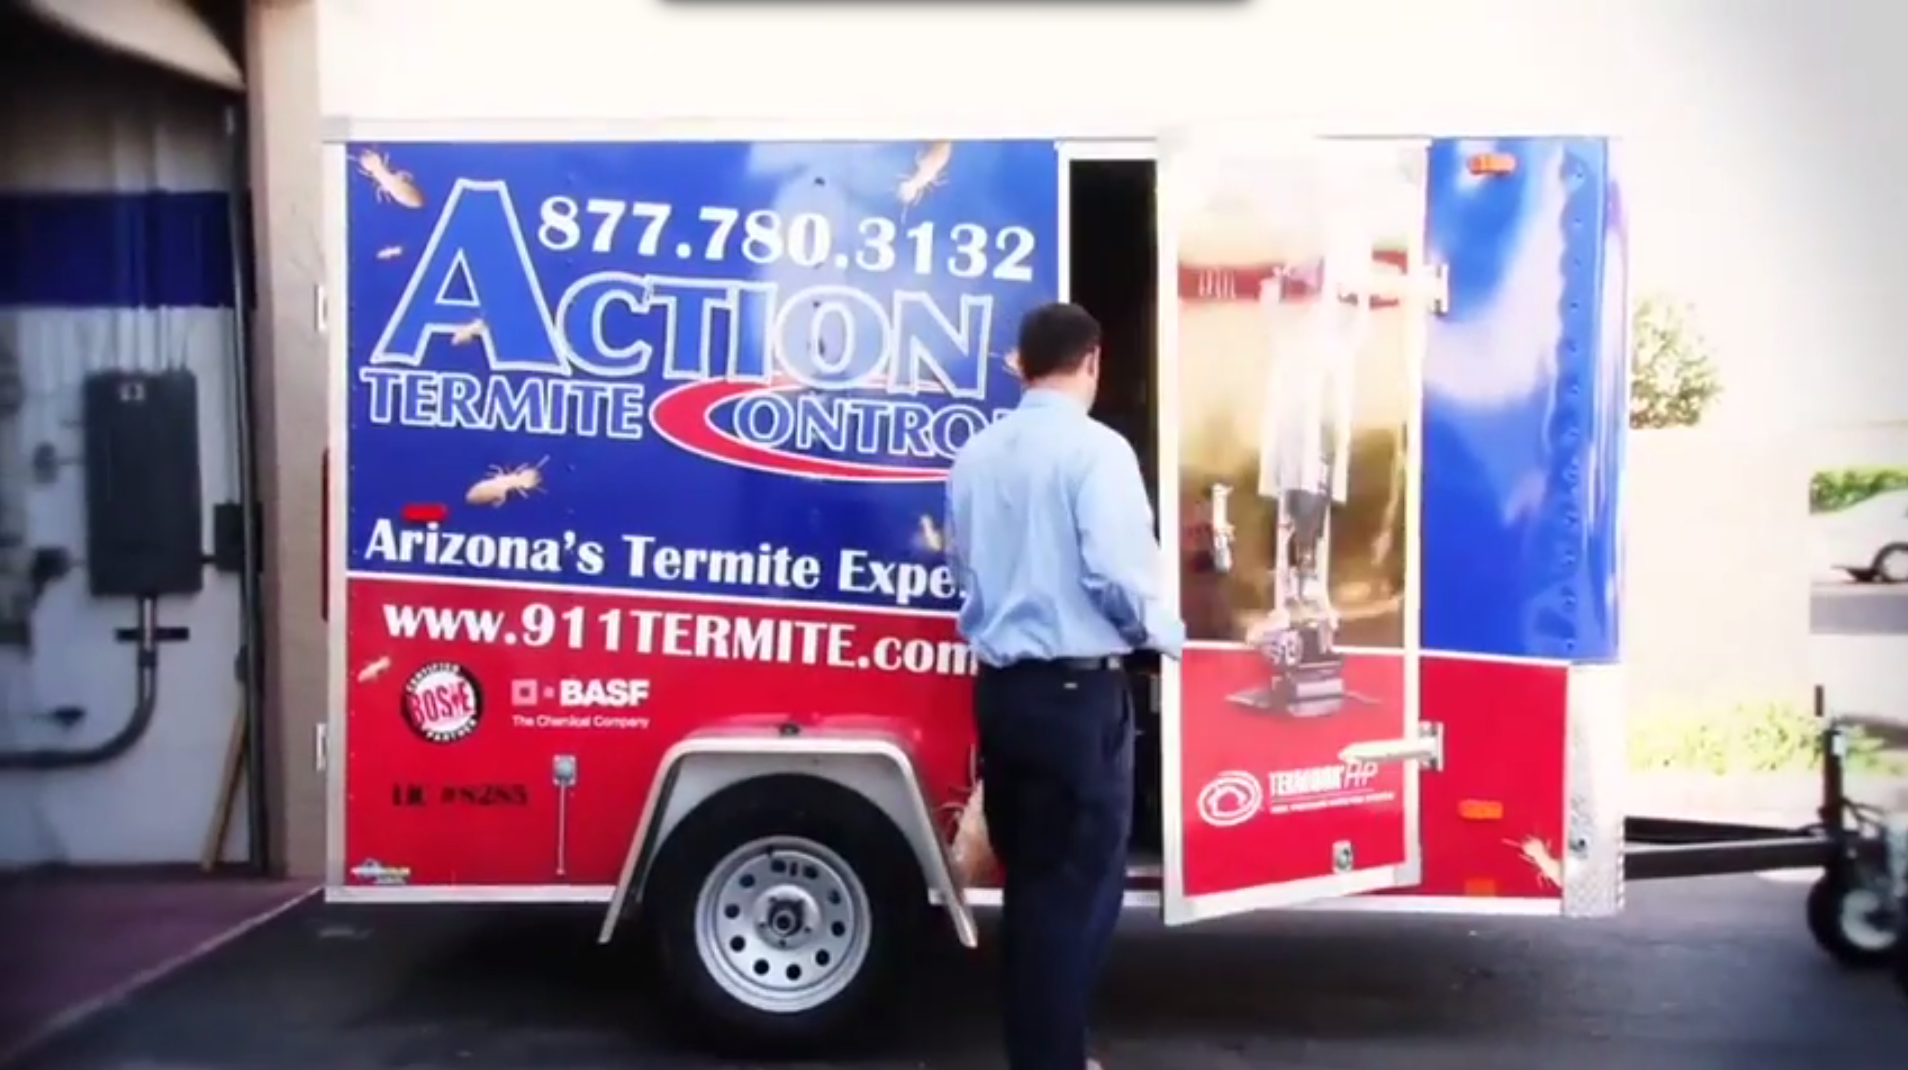 Action Termite Control, a leader in the field of termite